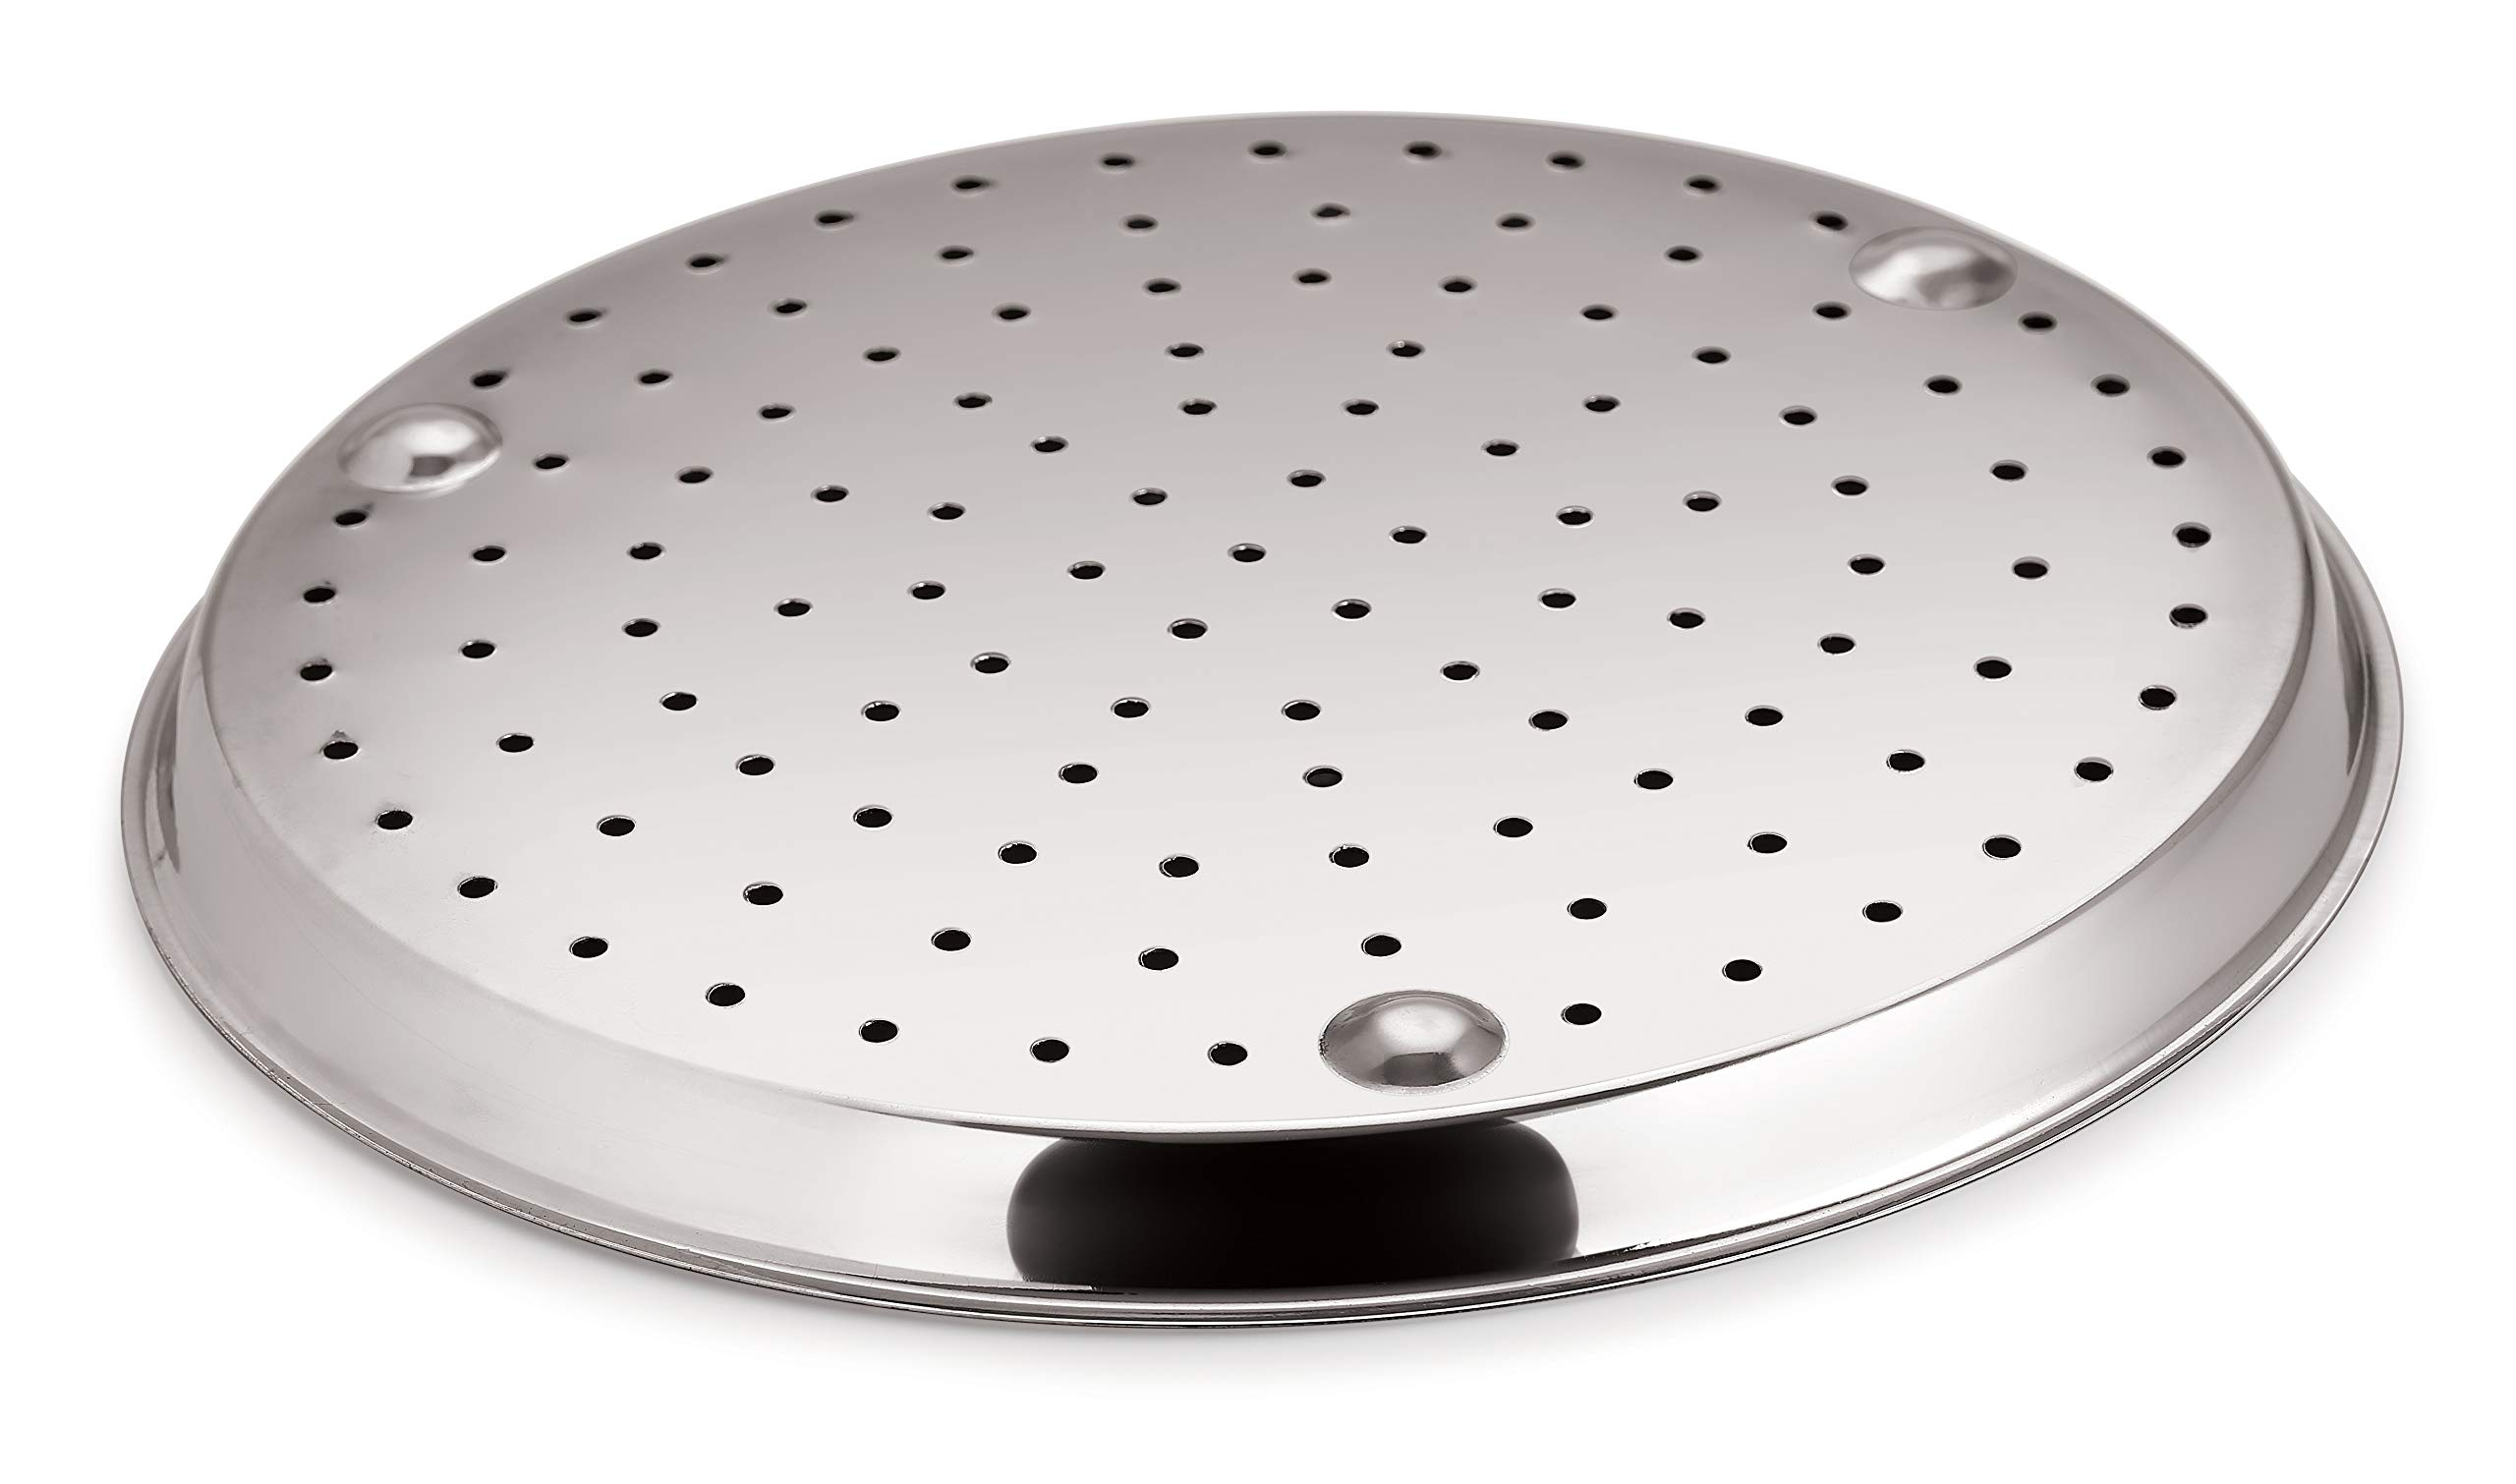 Chef Direct Stainless Steel Pizza Pan for Oven Ø 28 cm // Pizza Crisper, Bread Baking & Serving Pan//Perforated Bottom…